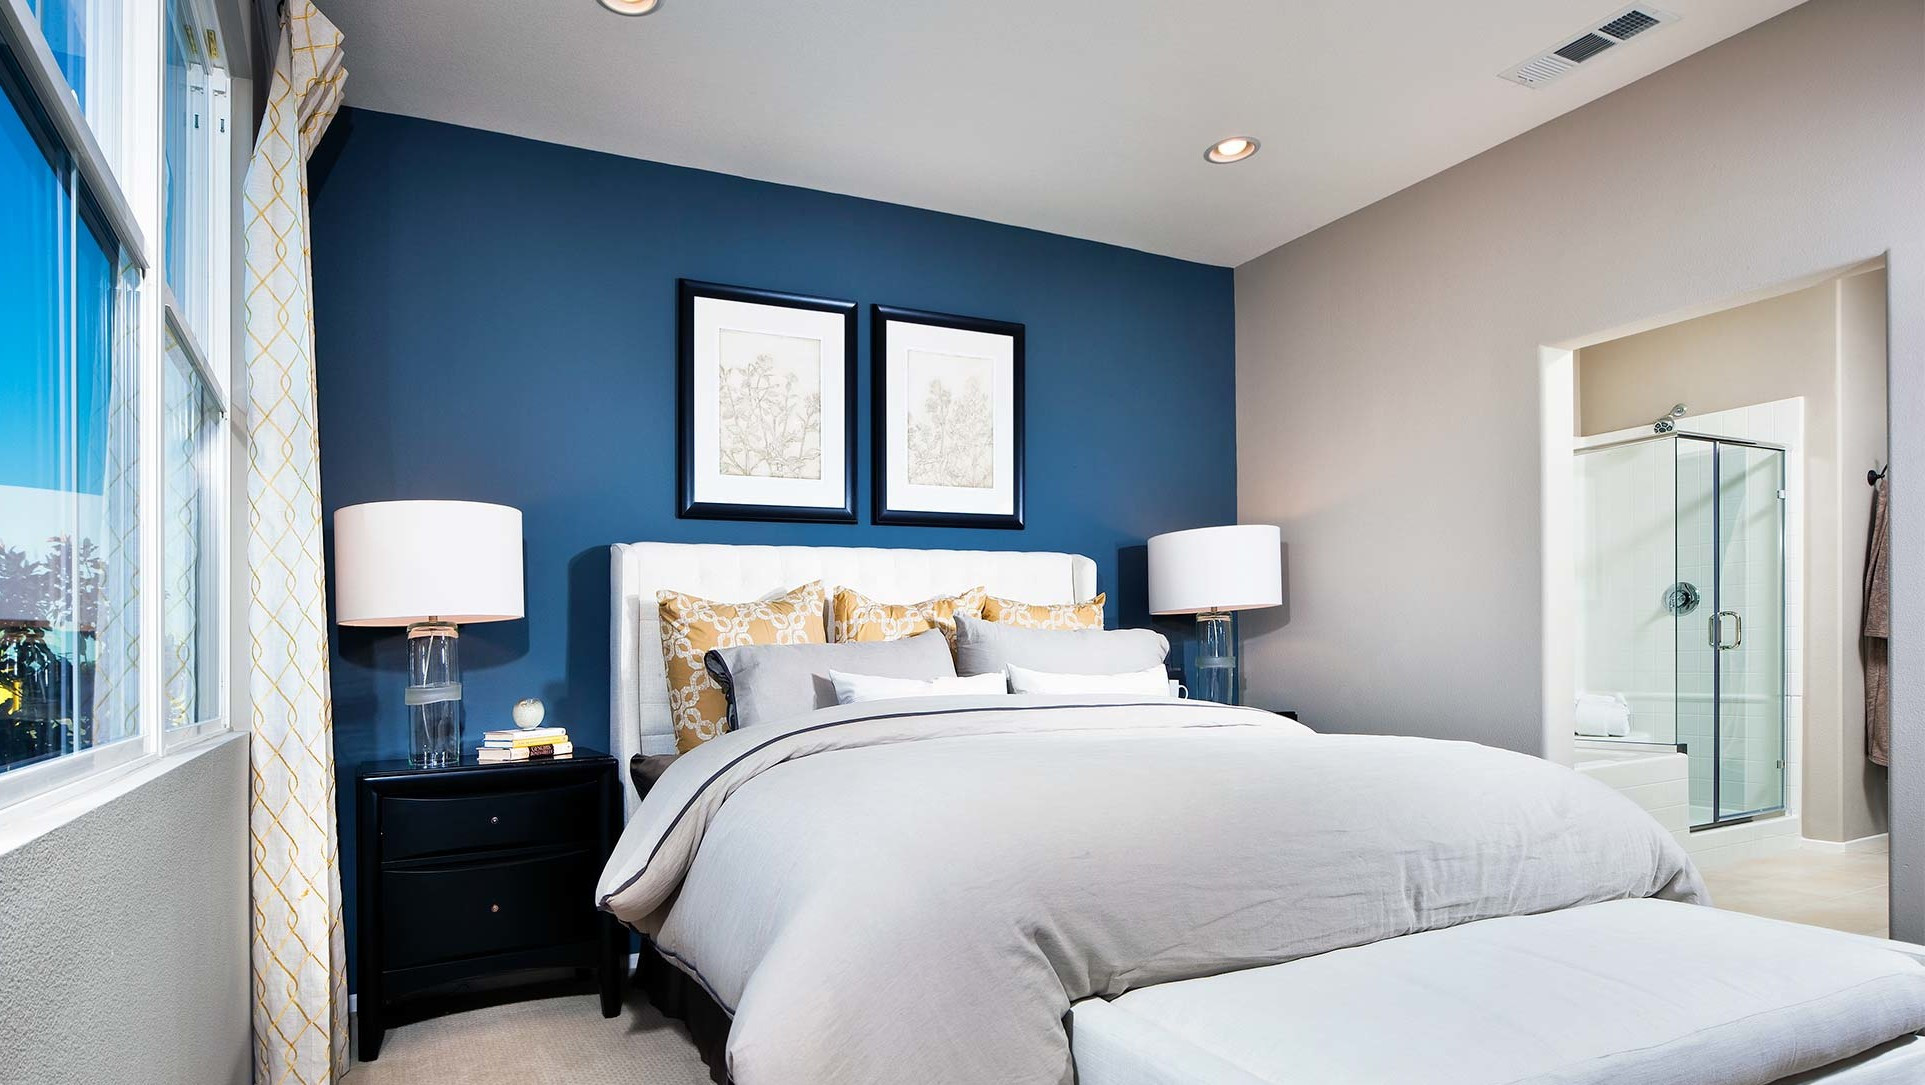 Best ideas about Painting Accent Walls . Save or Pin You re Doing It Wrong Painting an Accent Wall Now.